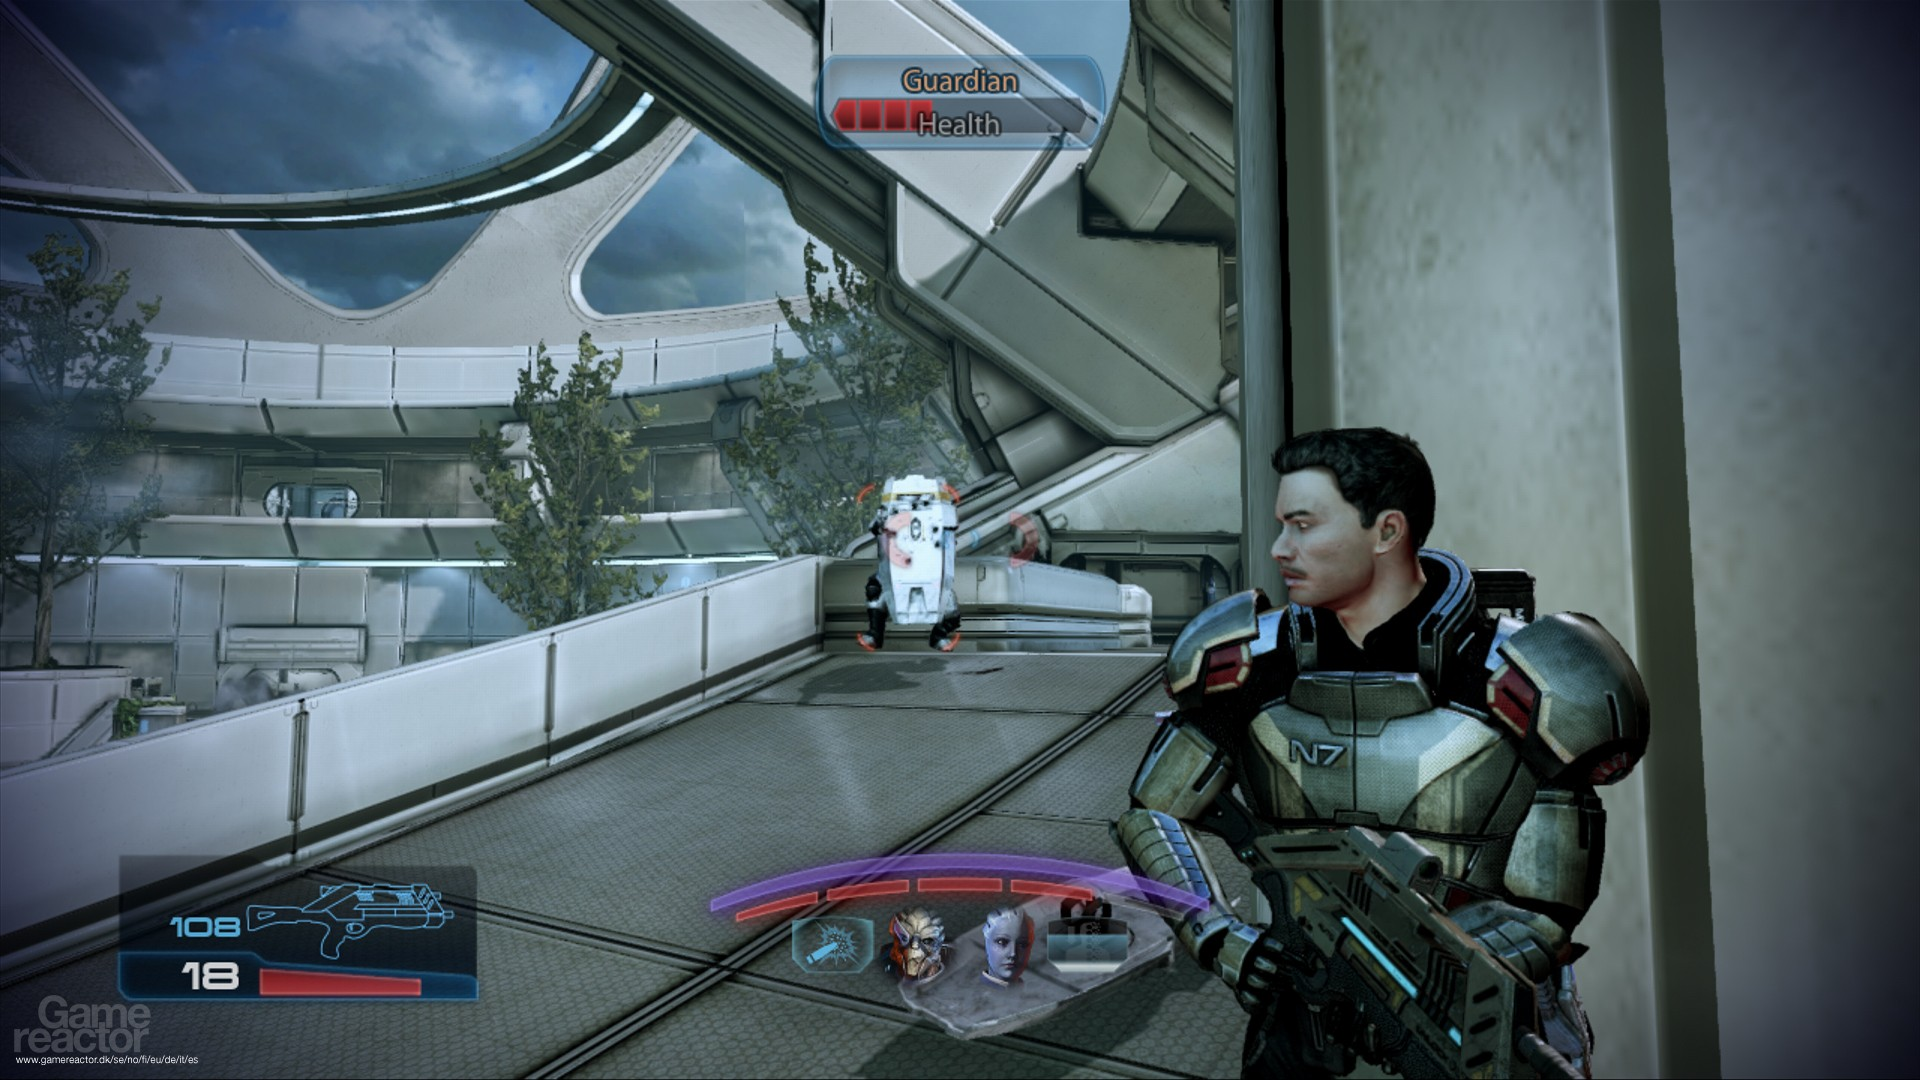 Mass effect 3 download patch porno pic